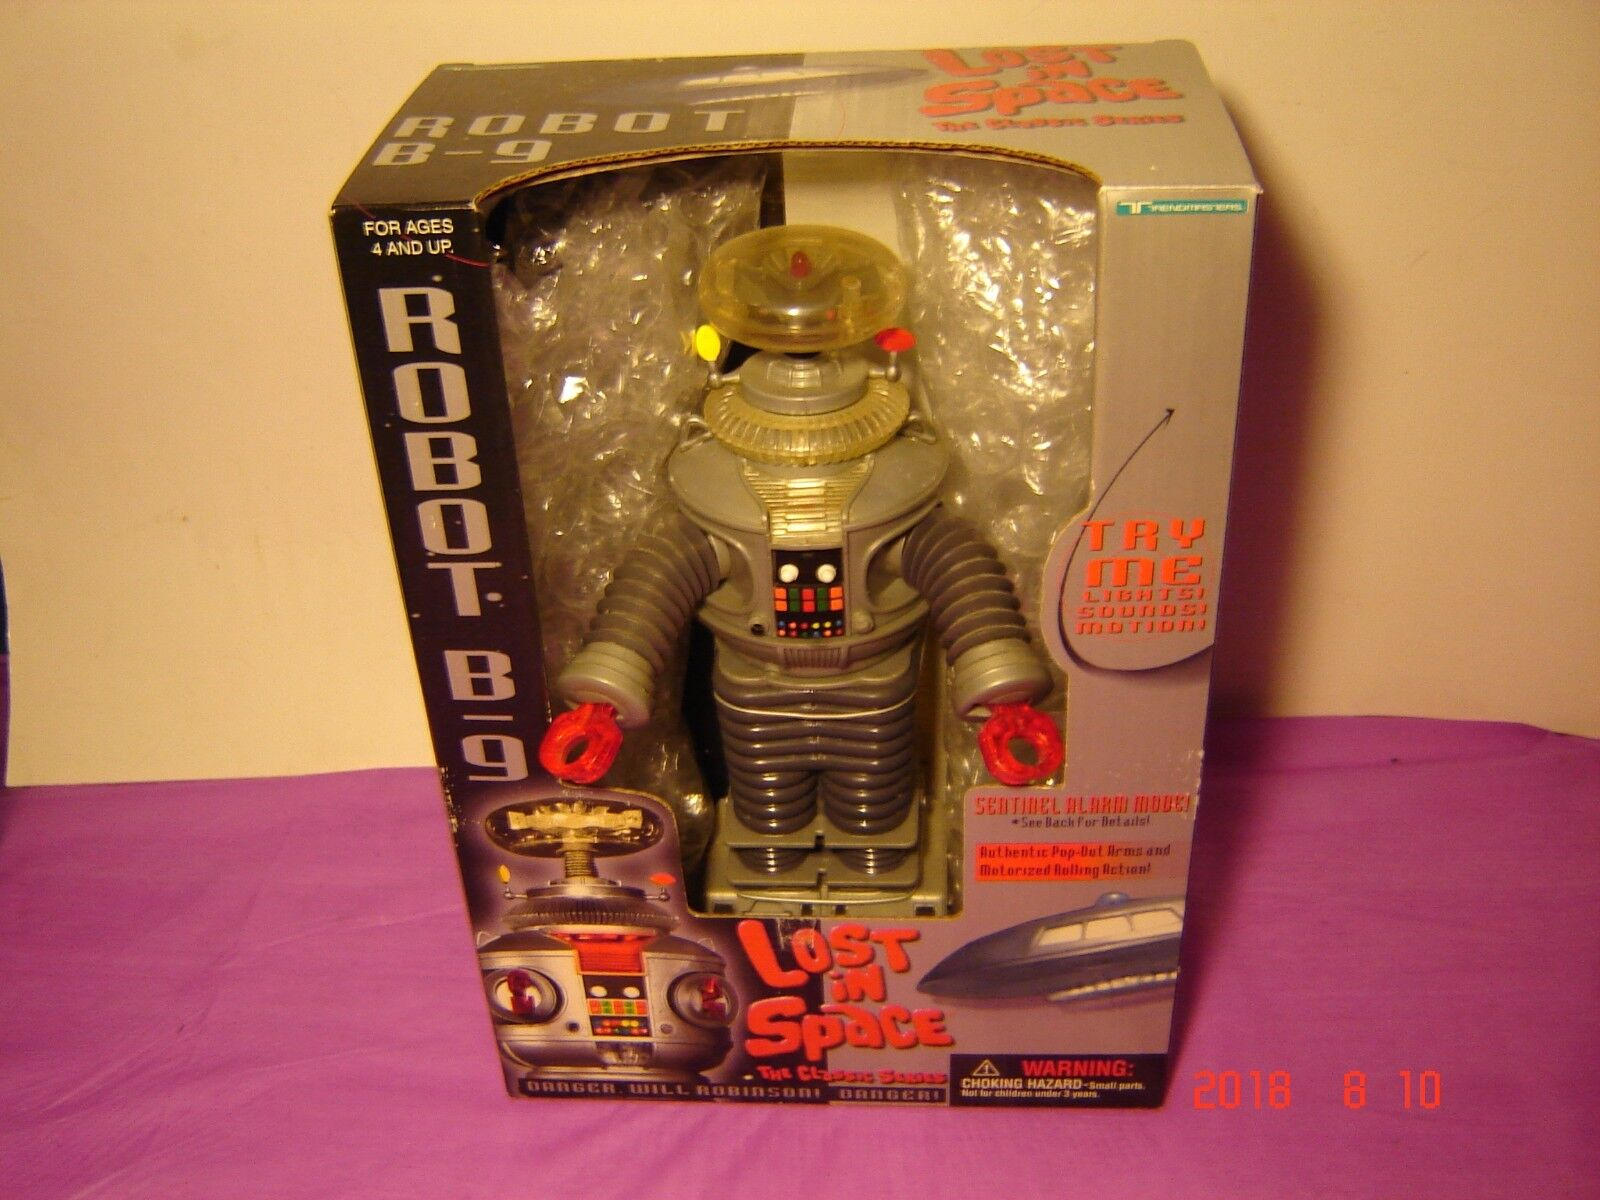 1997 LOST IN SPACE ROBOT B-9 10